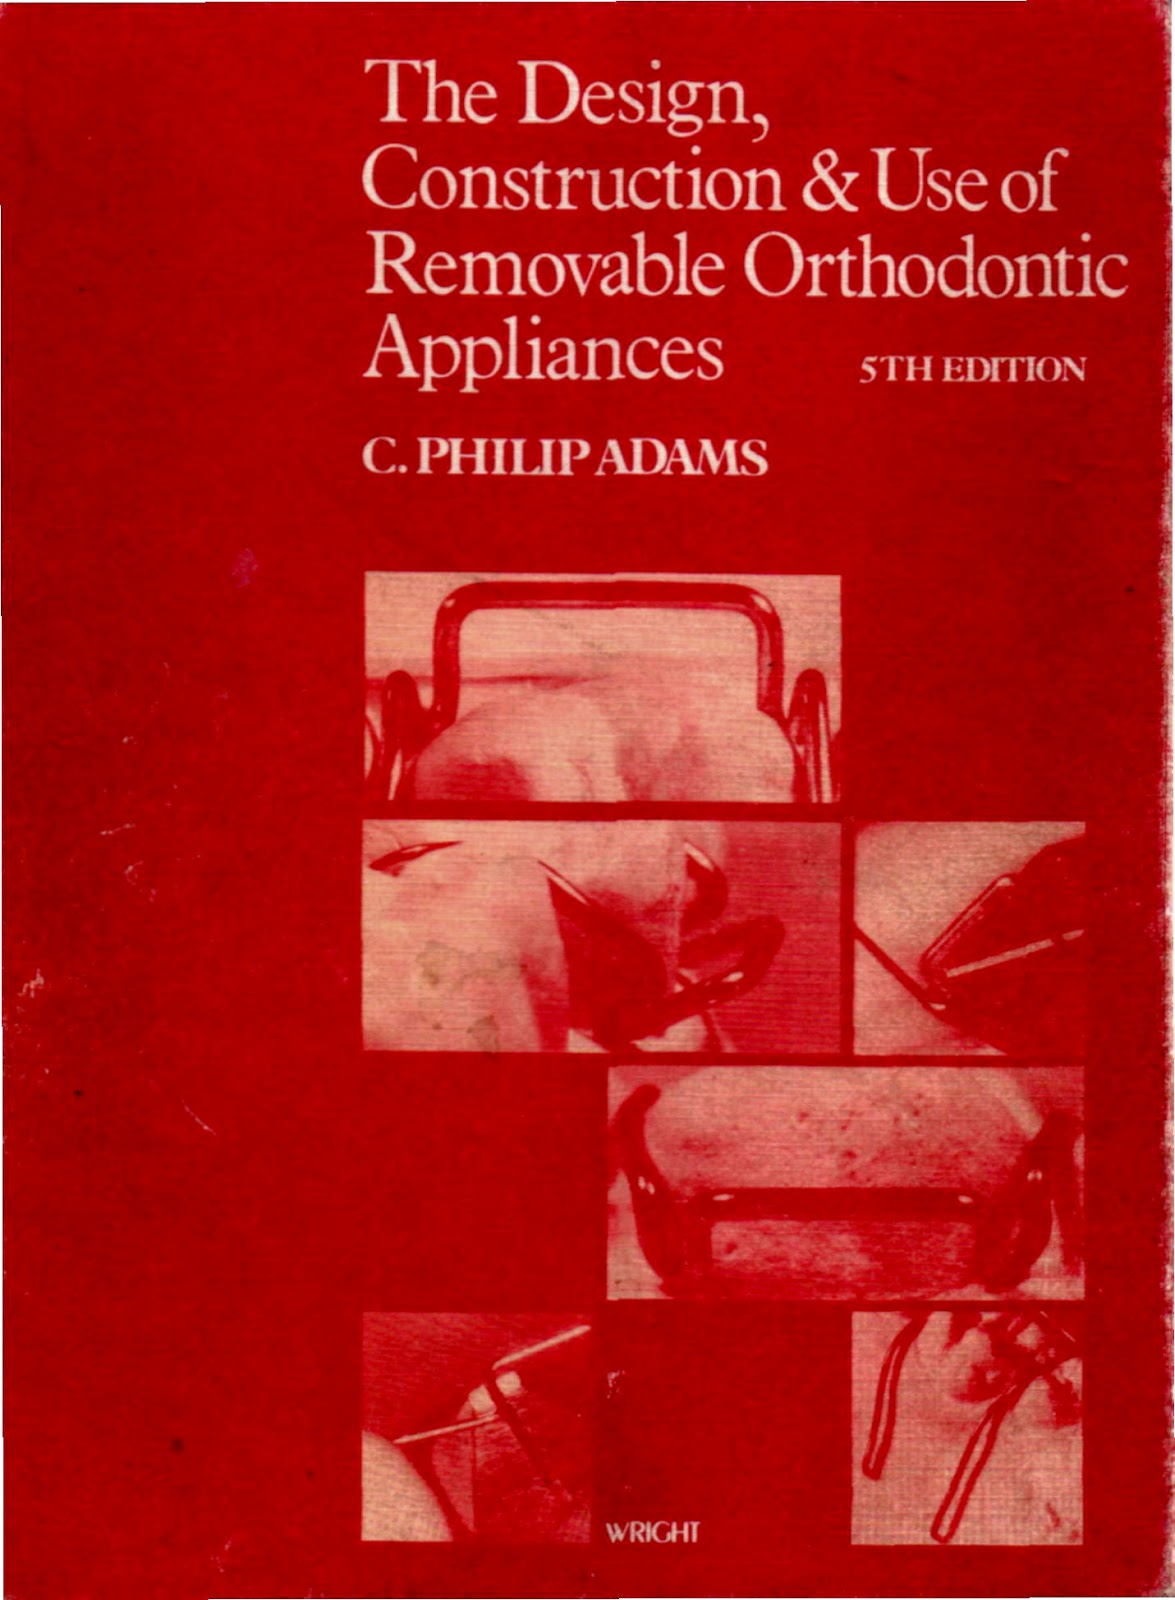 The Design Construction and Use of Removable Orthodontic Appliances - C. PHILIP ADAMS - 5th.ed.© 1984.pdf